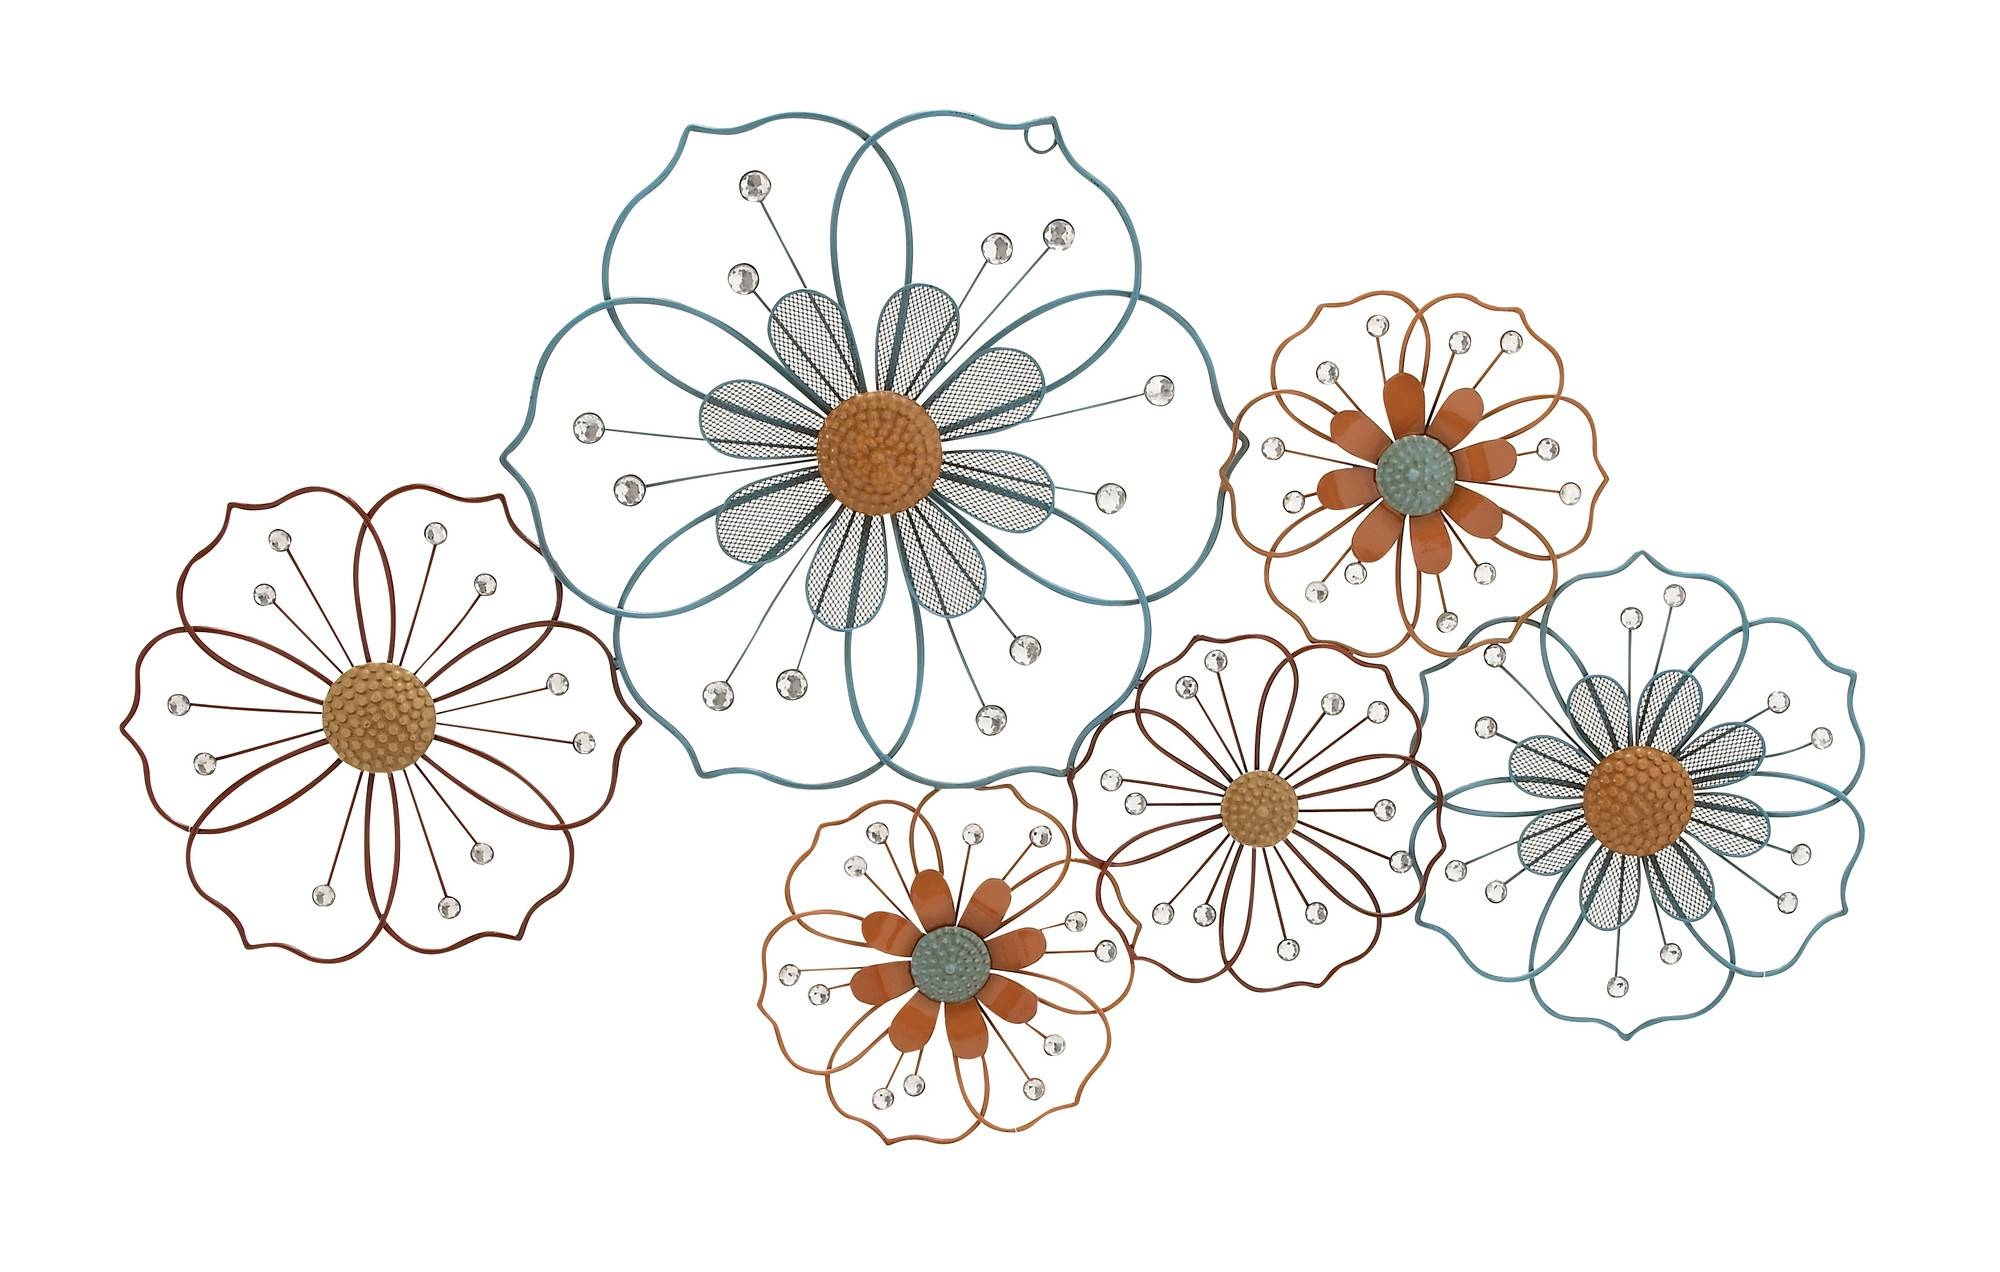 Wall Art Design Ideas: Silhouette New Decorative Large Metal Throughout Latest Contemporary Metal Wall Art Flowers (View 13 of 20)